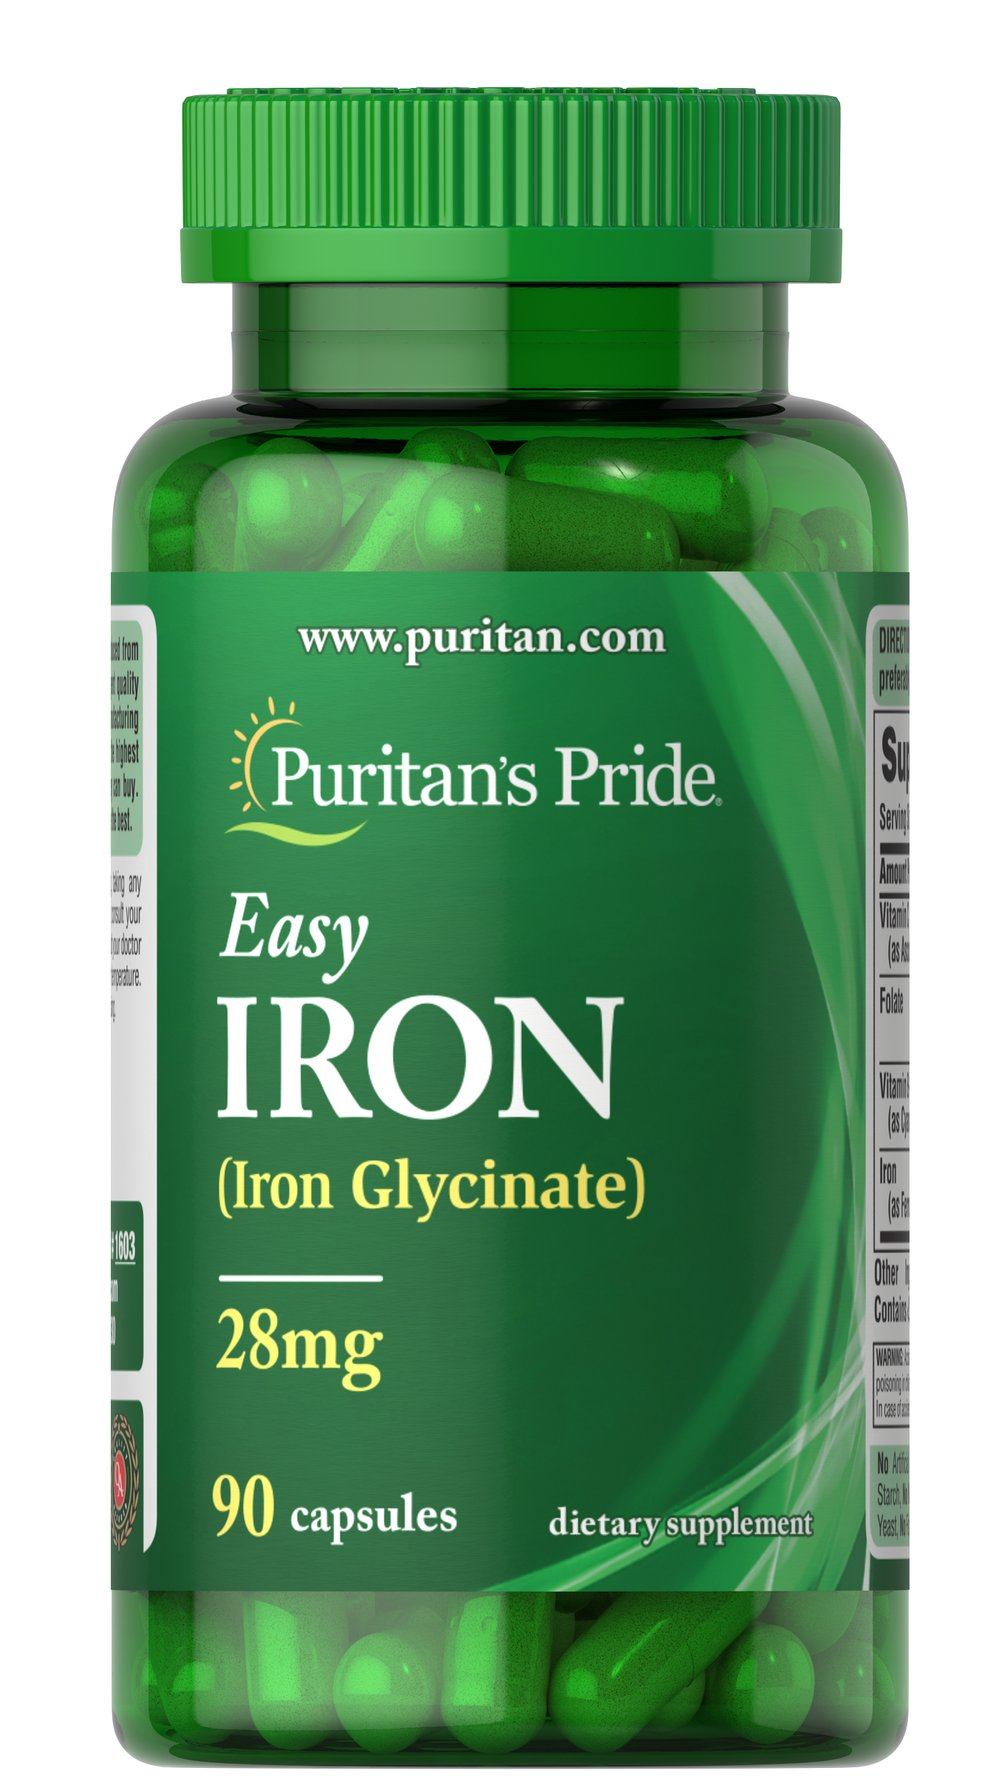 Easy Iron 28 mg (Iron Glycinate)